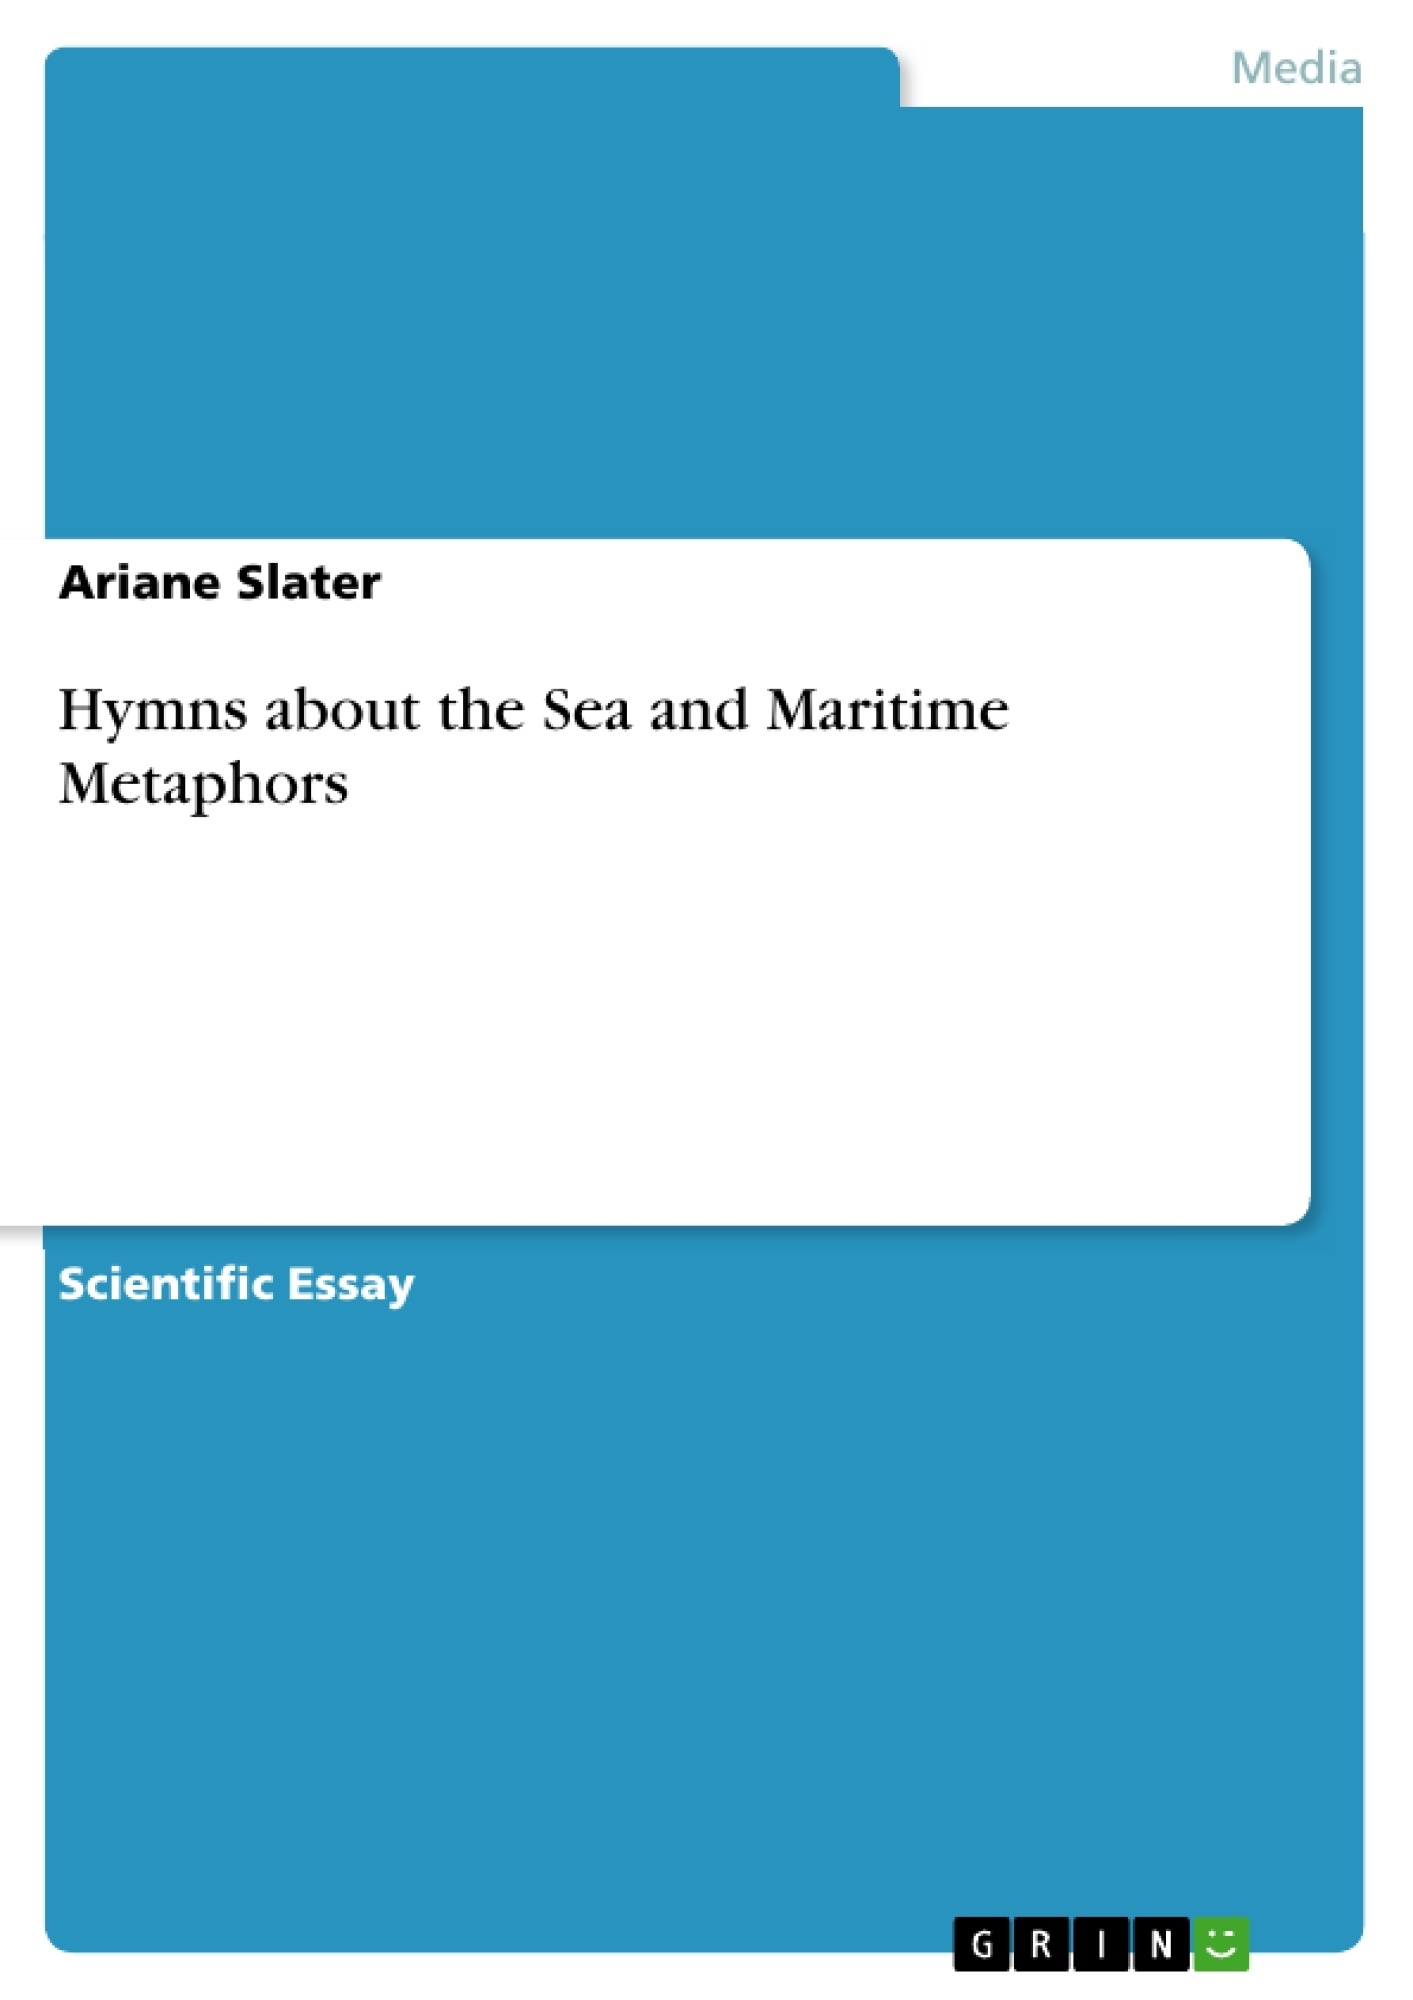 Title: Hymns about the Sea and Maritime Metaphors